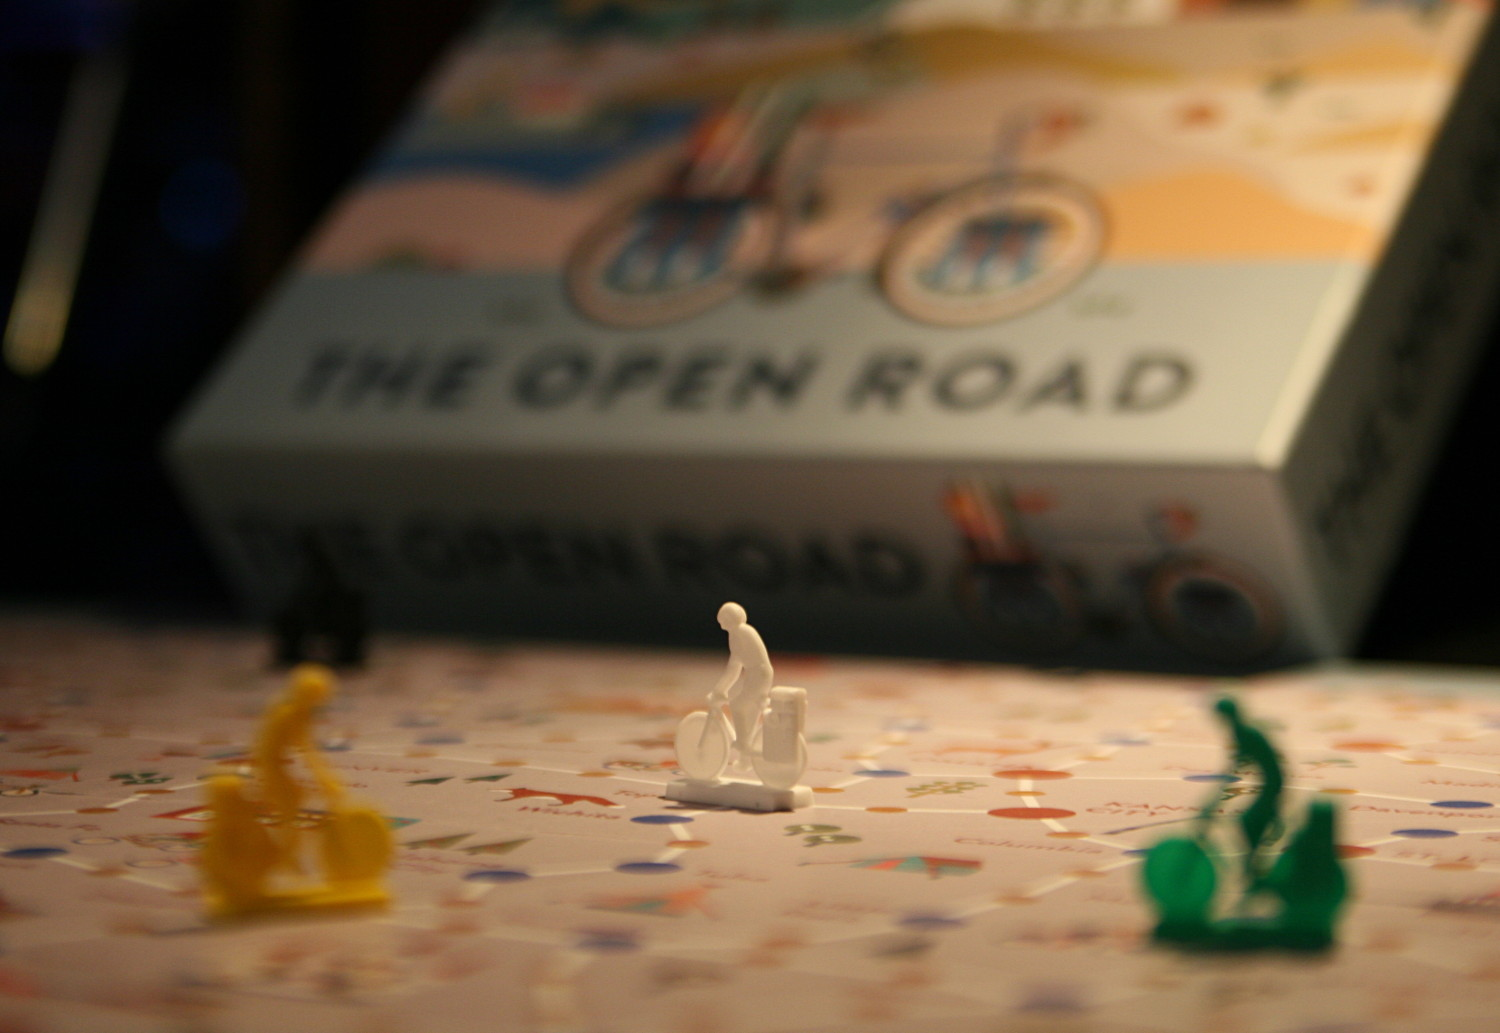 Brettspiel: The Open Road, Foto: Ronald Mencke (WLV)